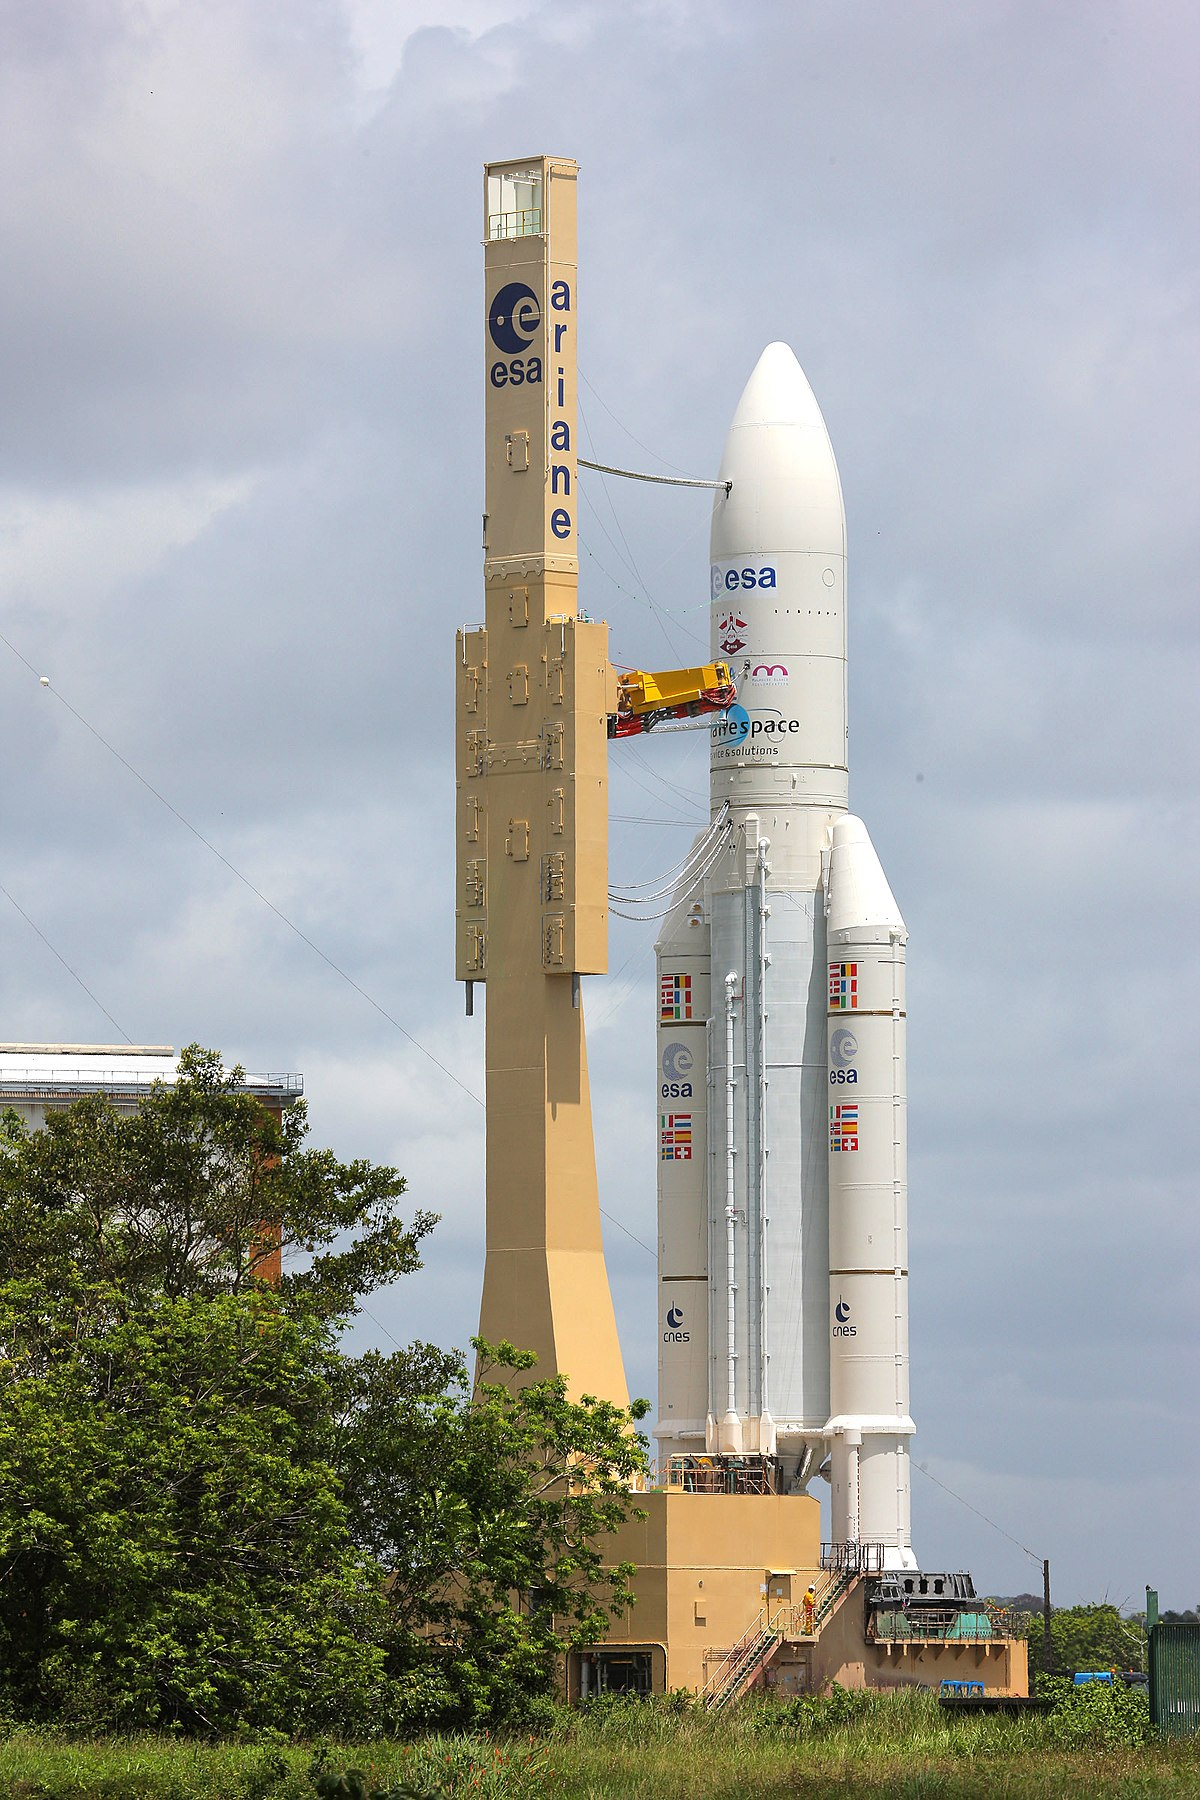 https://upload.wikimedia.org/wikipedia/commons/thumb/3/3c/Ariane_5ES_with_ATV_4_on_its_way_to_ELA-3.jpg/1200px-Ariane_5ES_with_ATV_4_on_its_way_to_ELA-3.jpg